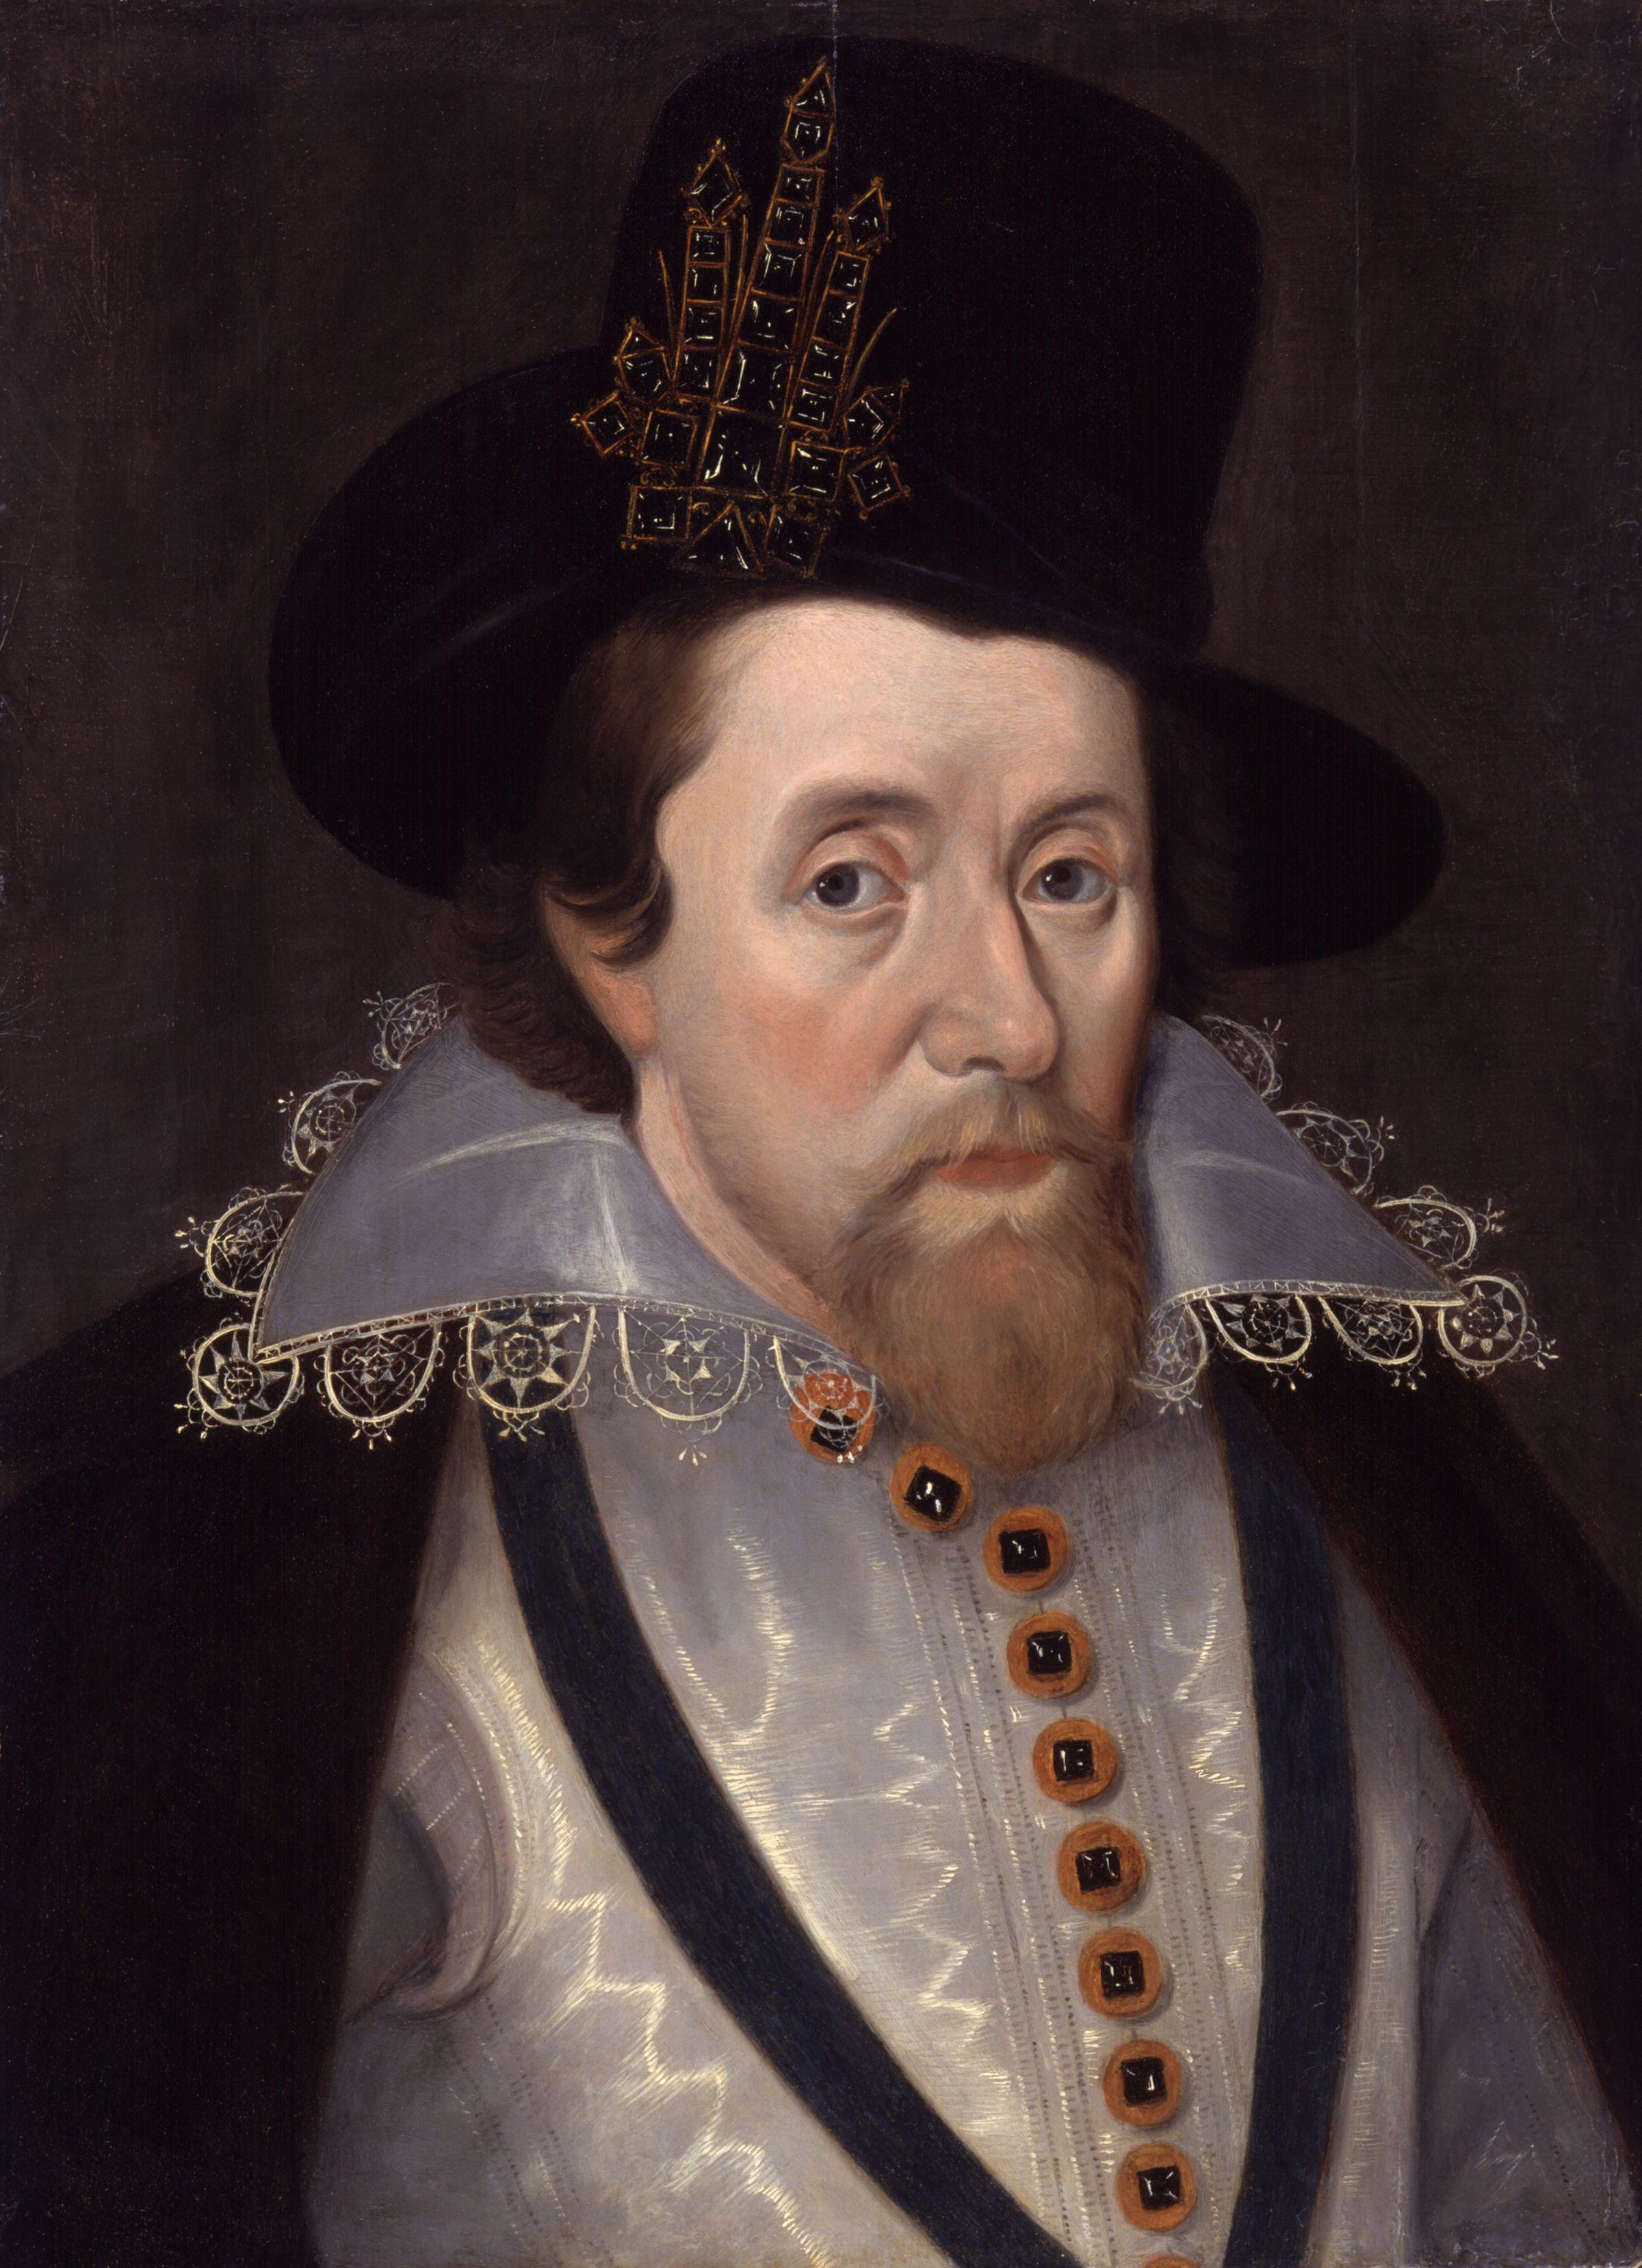 An image of James I of Scotland